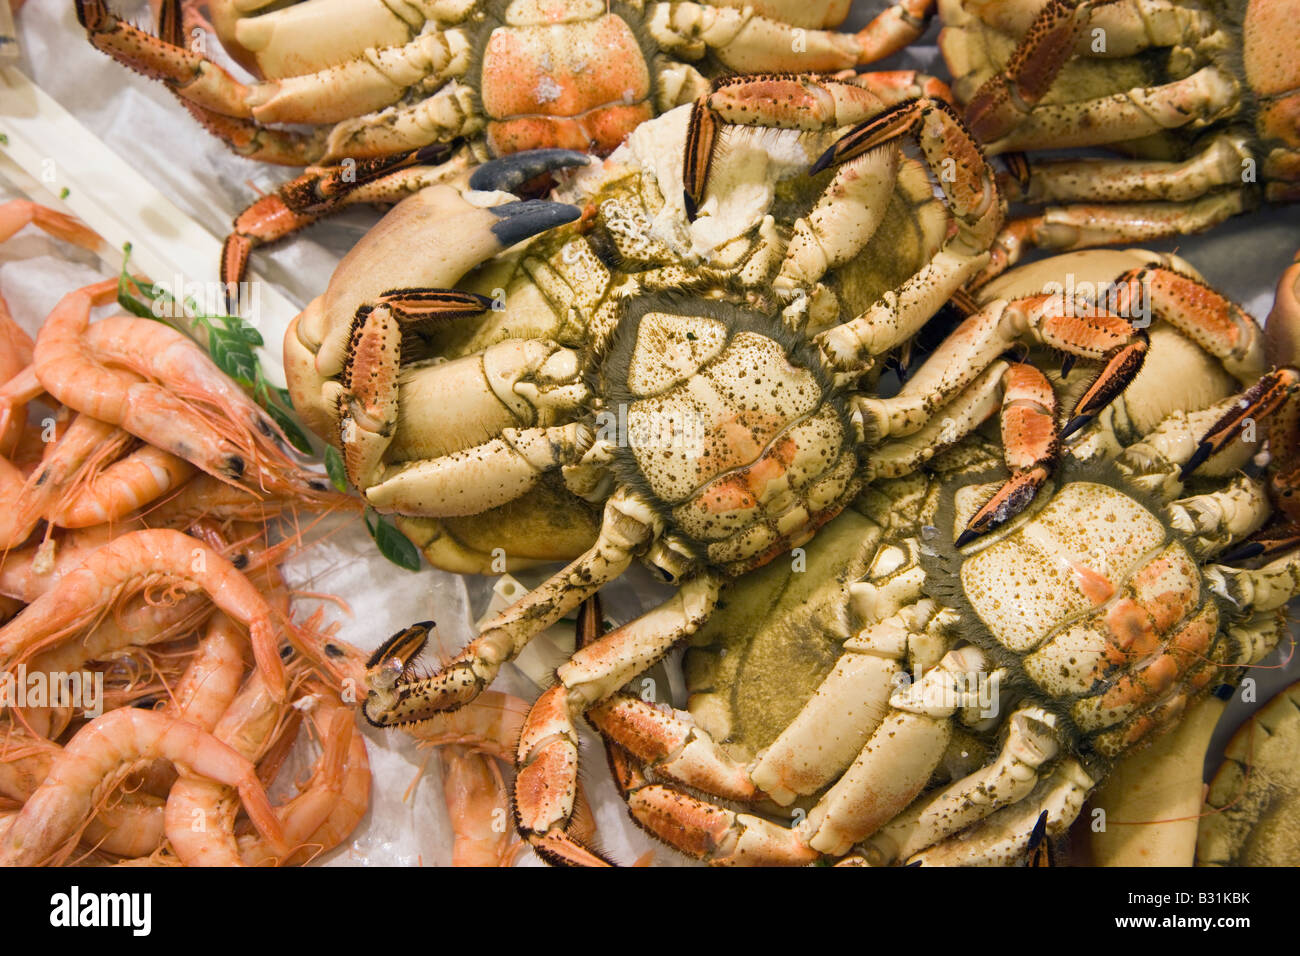 Crabs for sale on supermarket fish counter - Stock Image